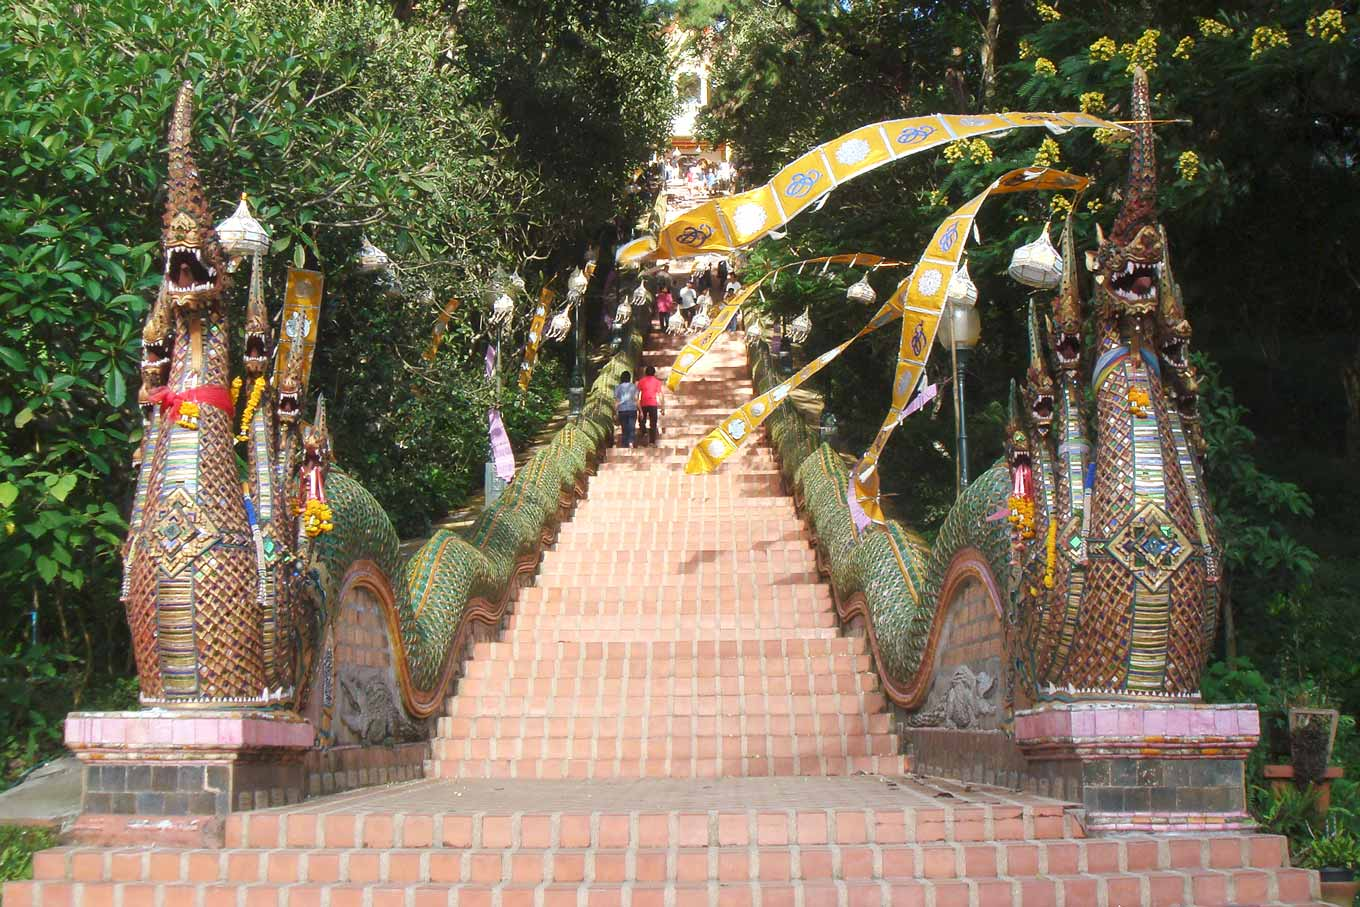 The naga staircase leading up to Wat Phra That Doi Suthep.